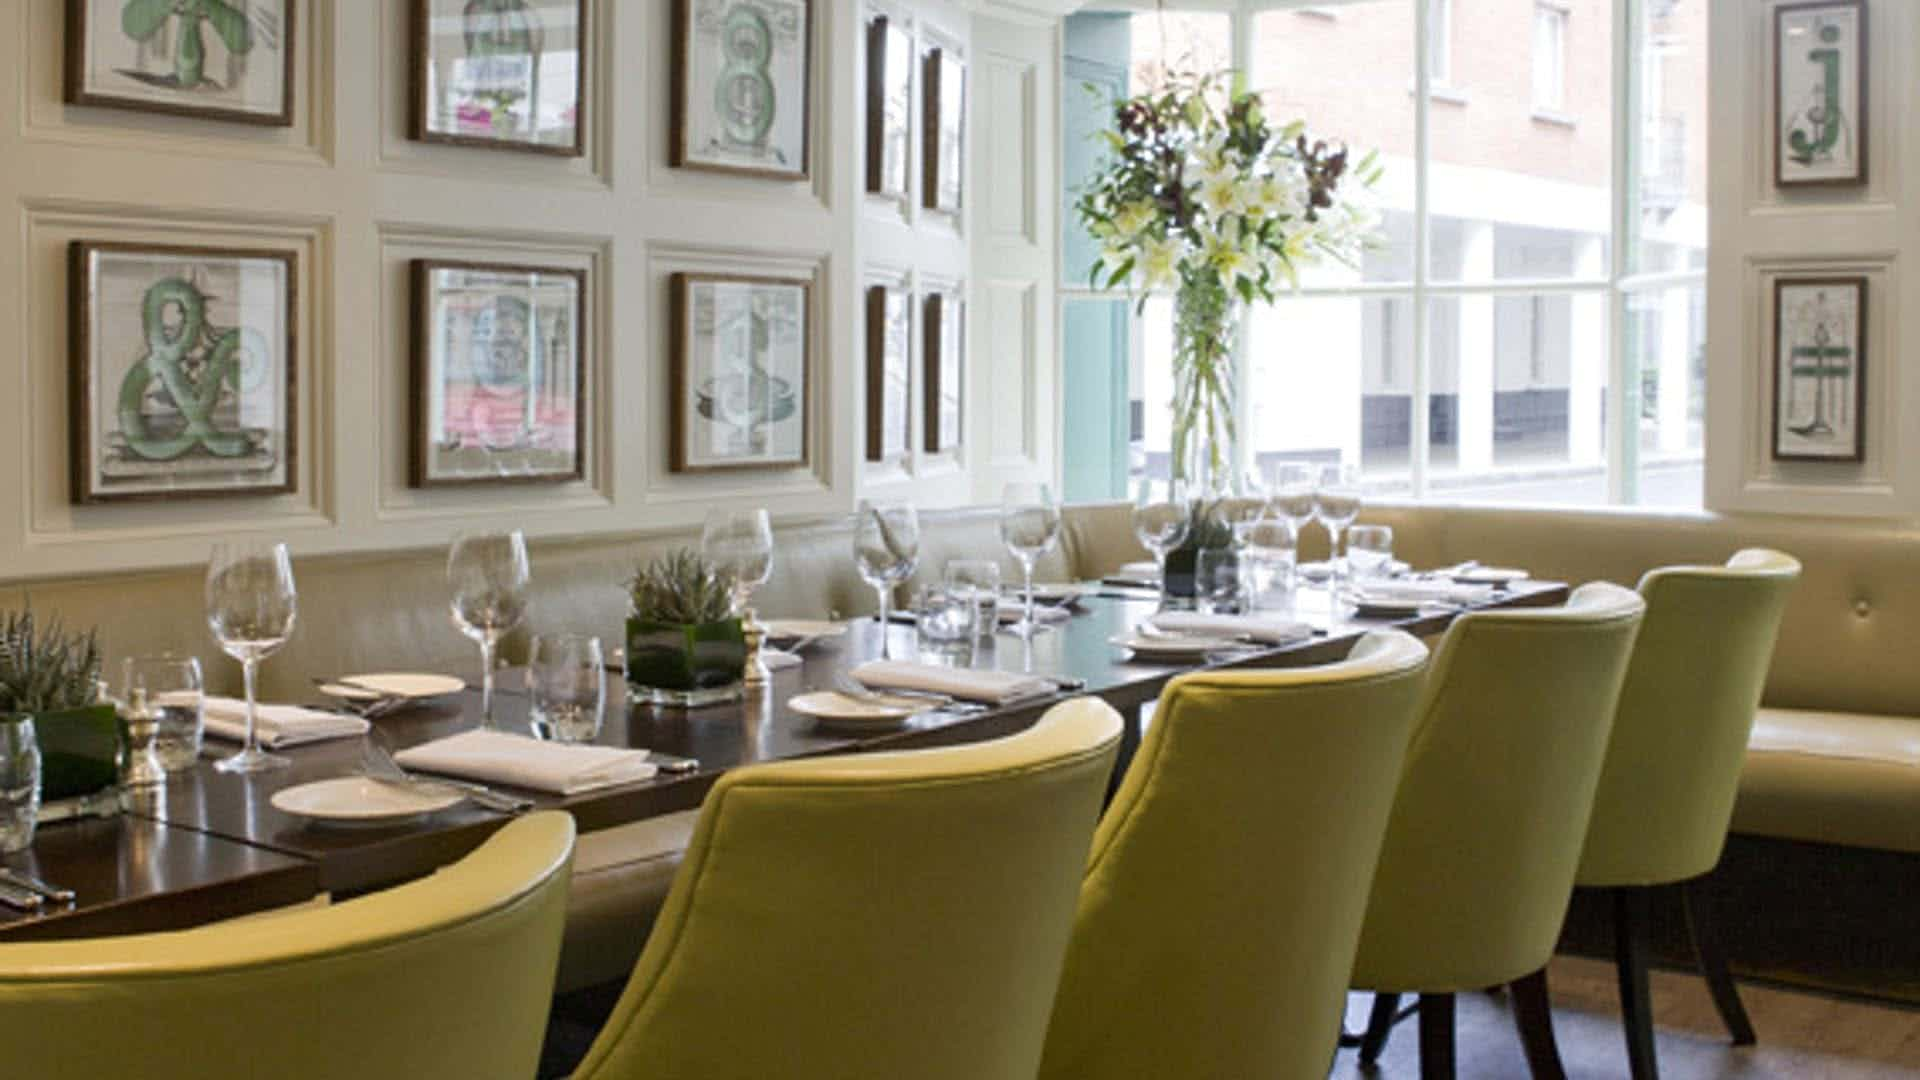 The Snug, Chiswell Street Dining Rooms